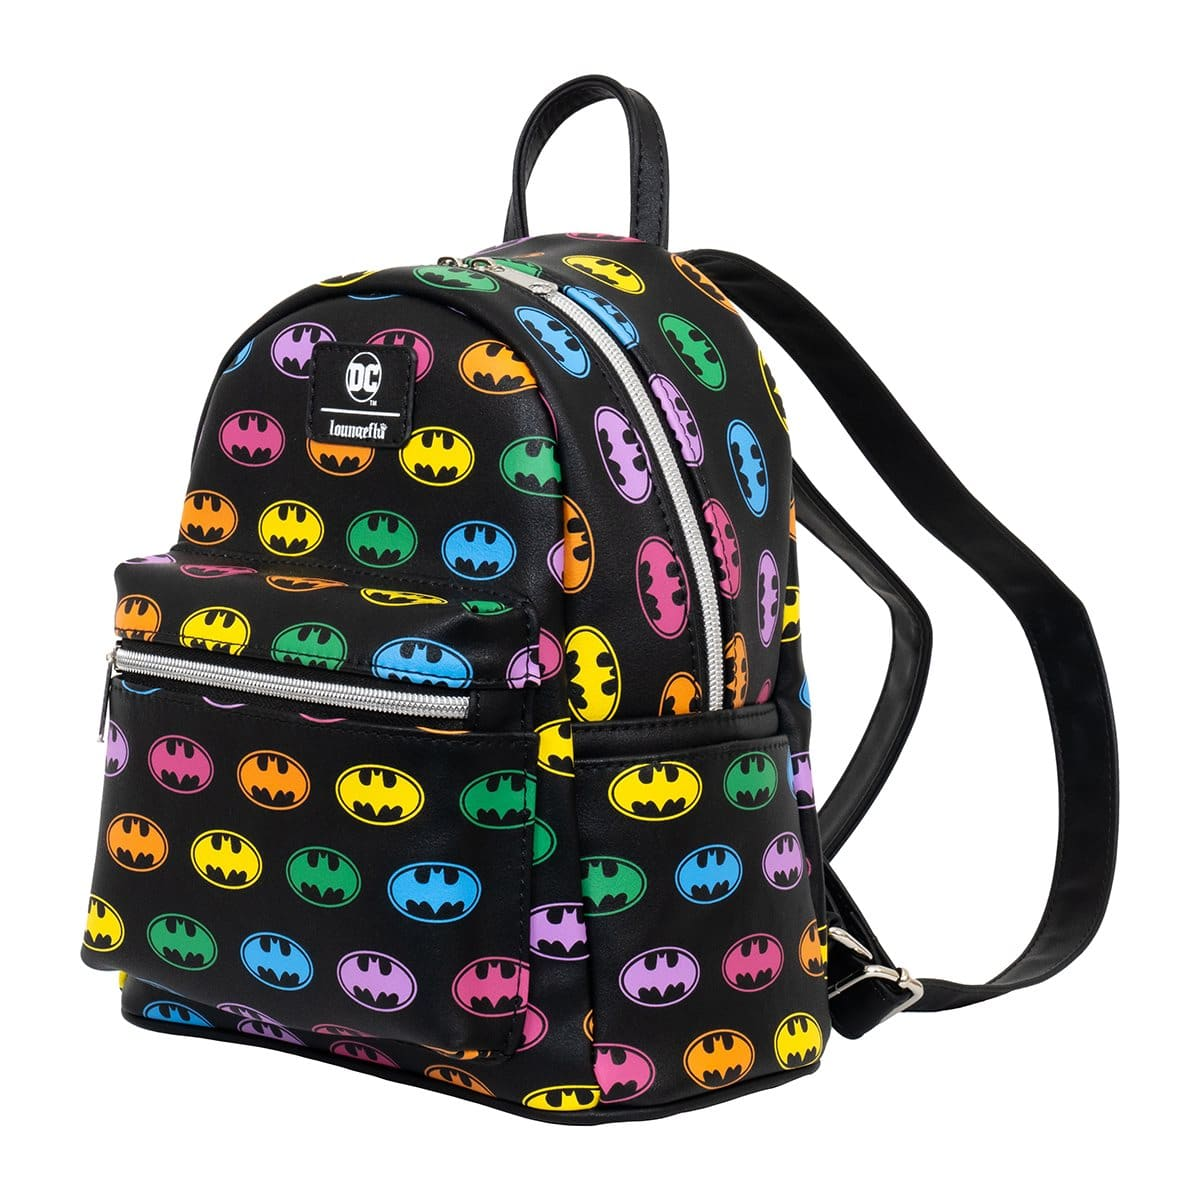 Funko's Rainbow Batman backpack and enamel pins are now available for pre-order 15